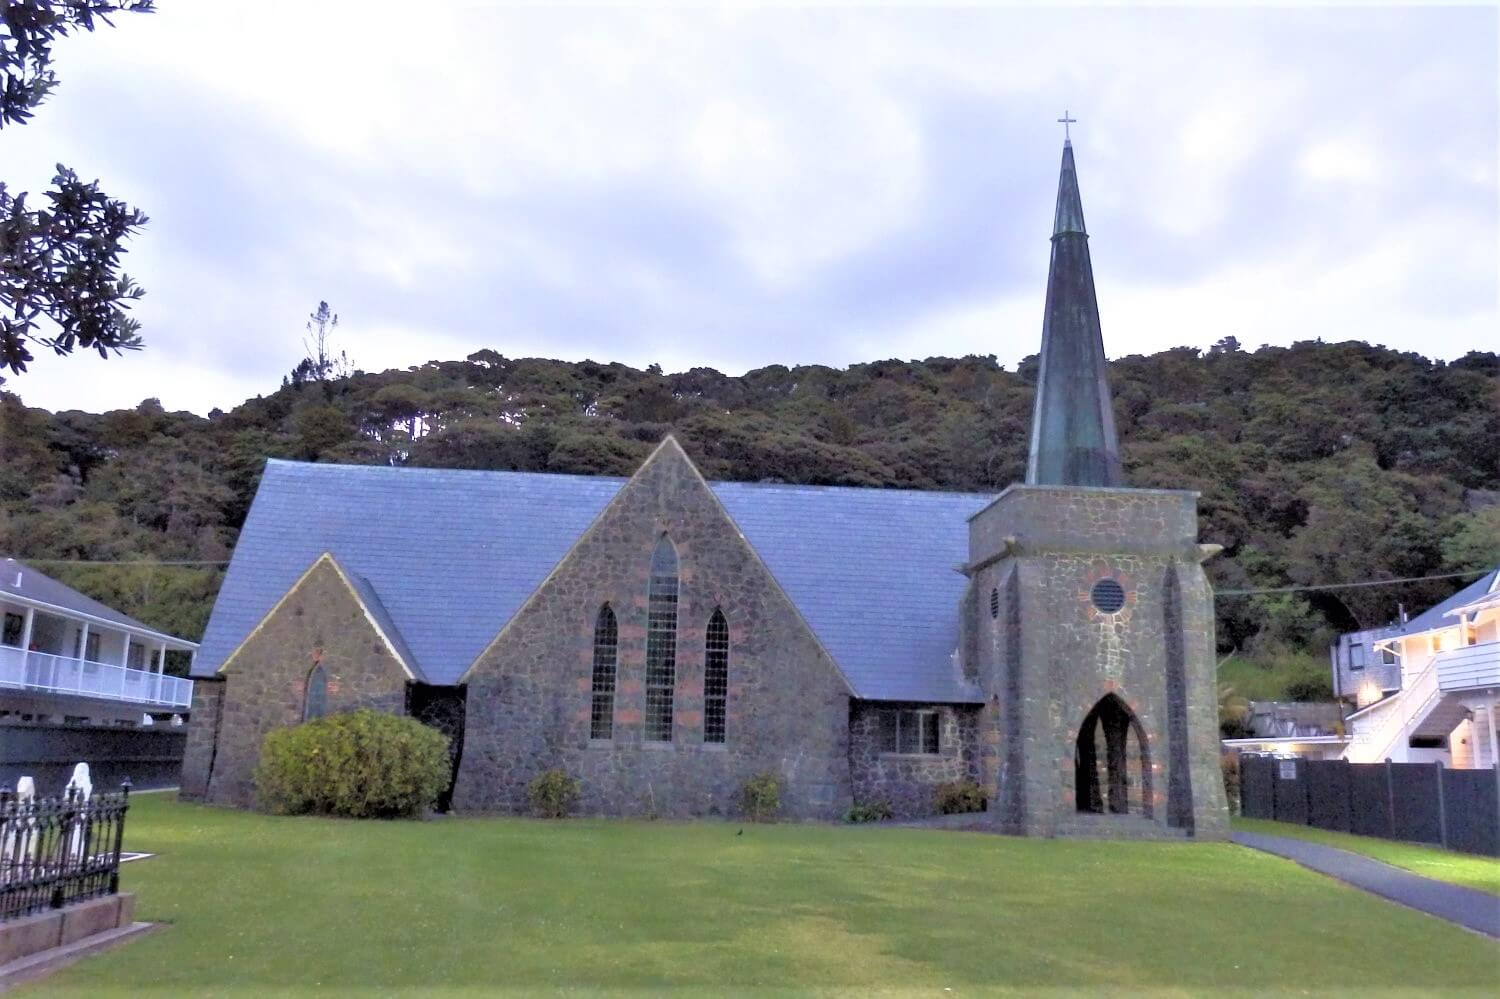 The St. Anglican Church in Paihia, New Zealand